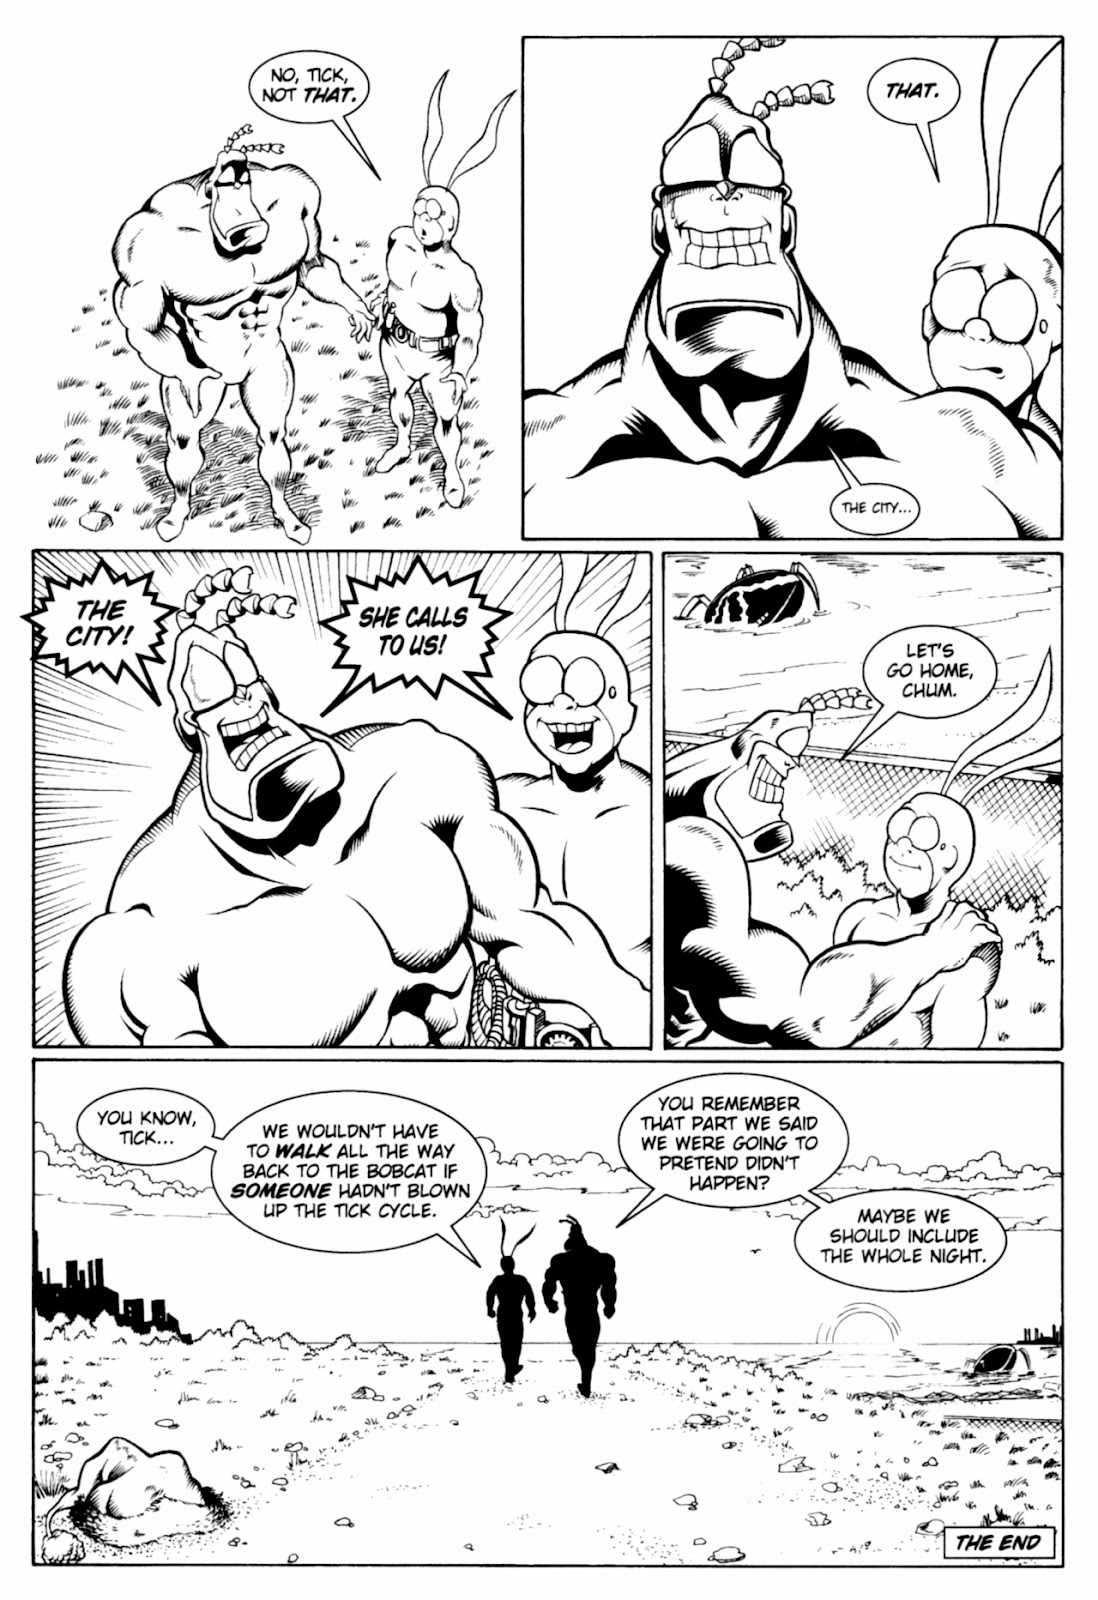 Read online The Tick comic -  Issue #13 - 25